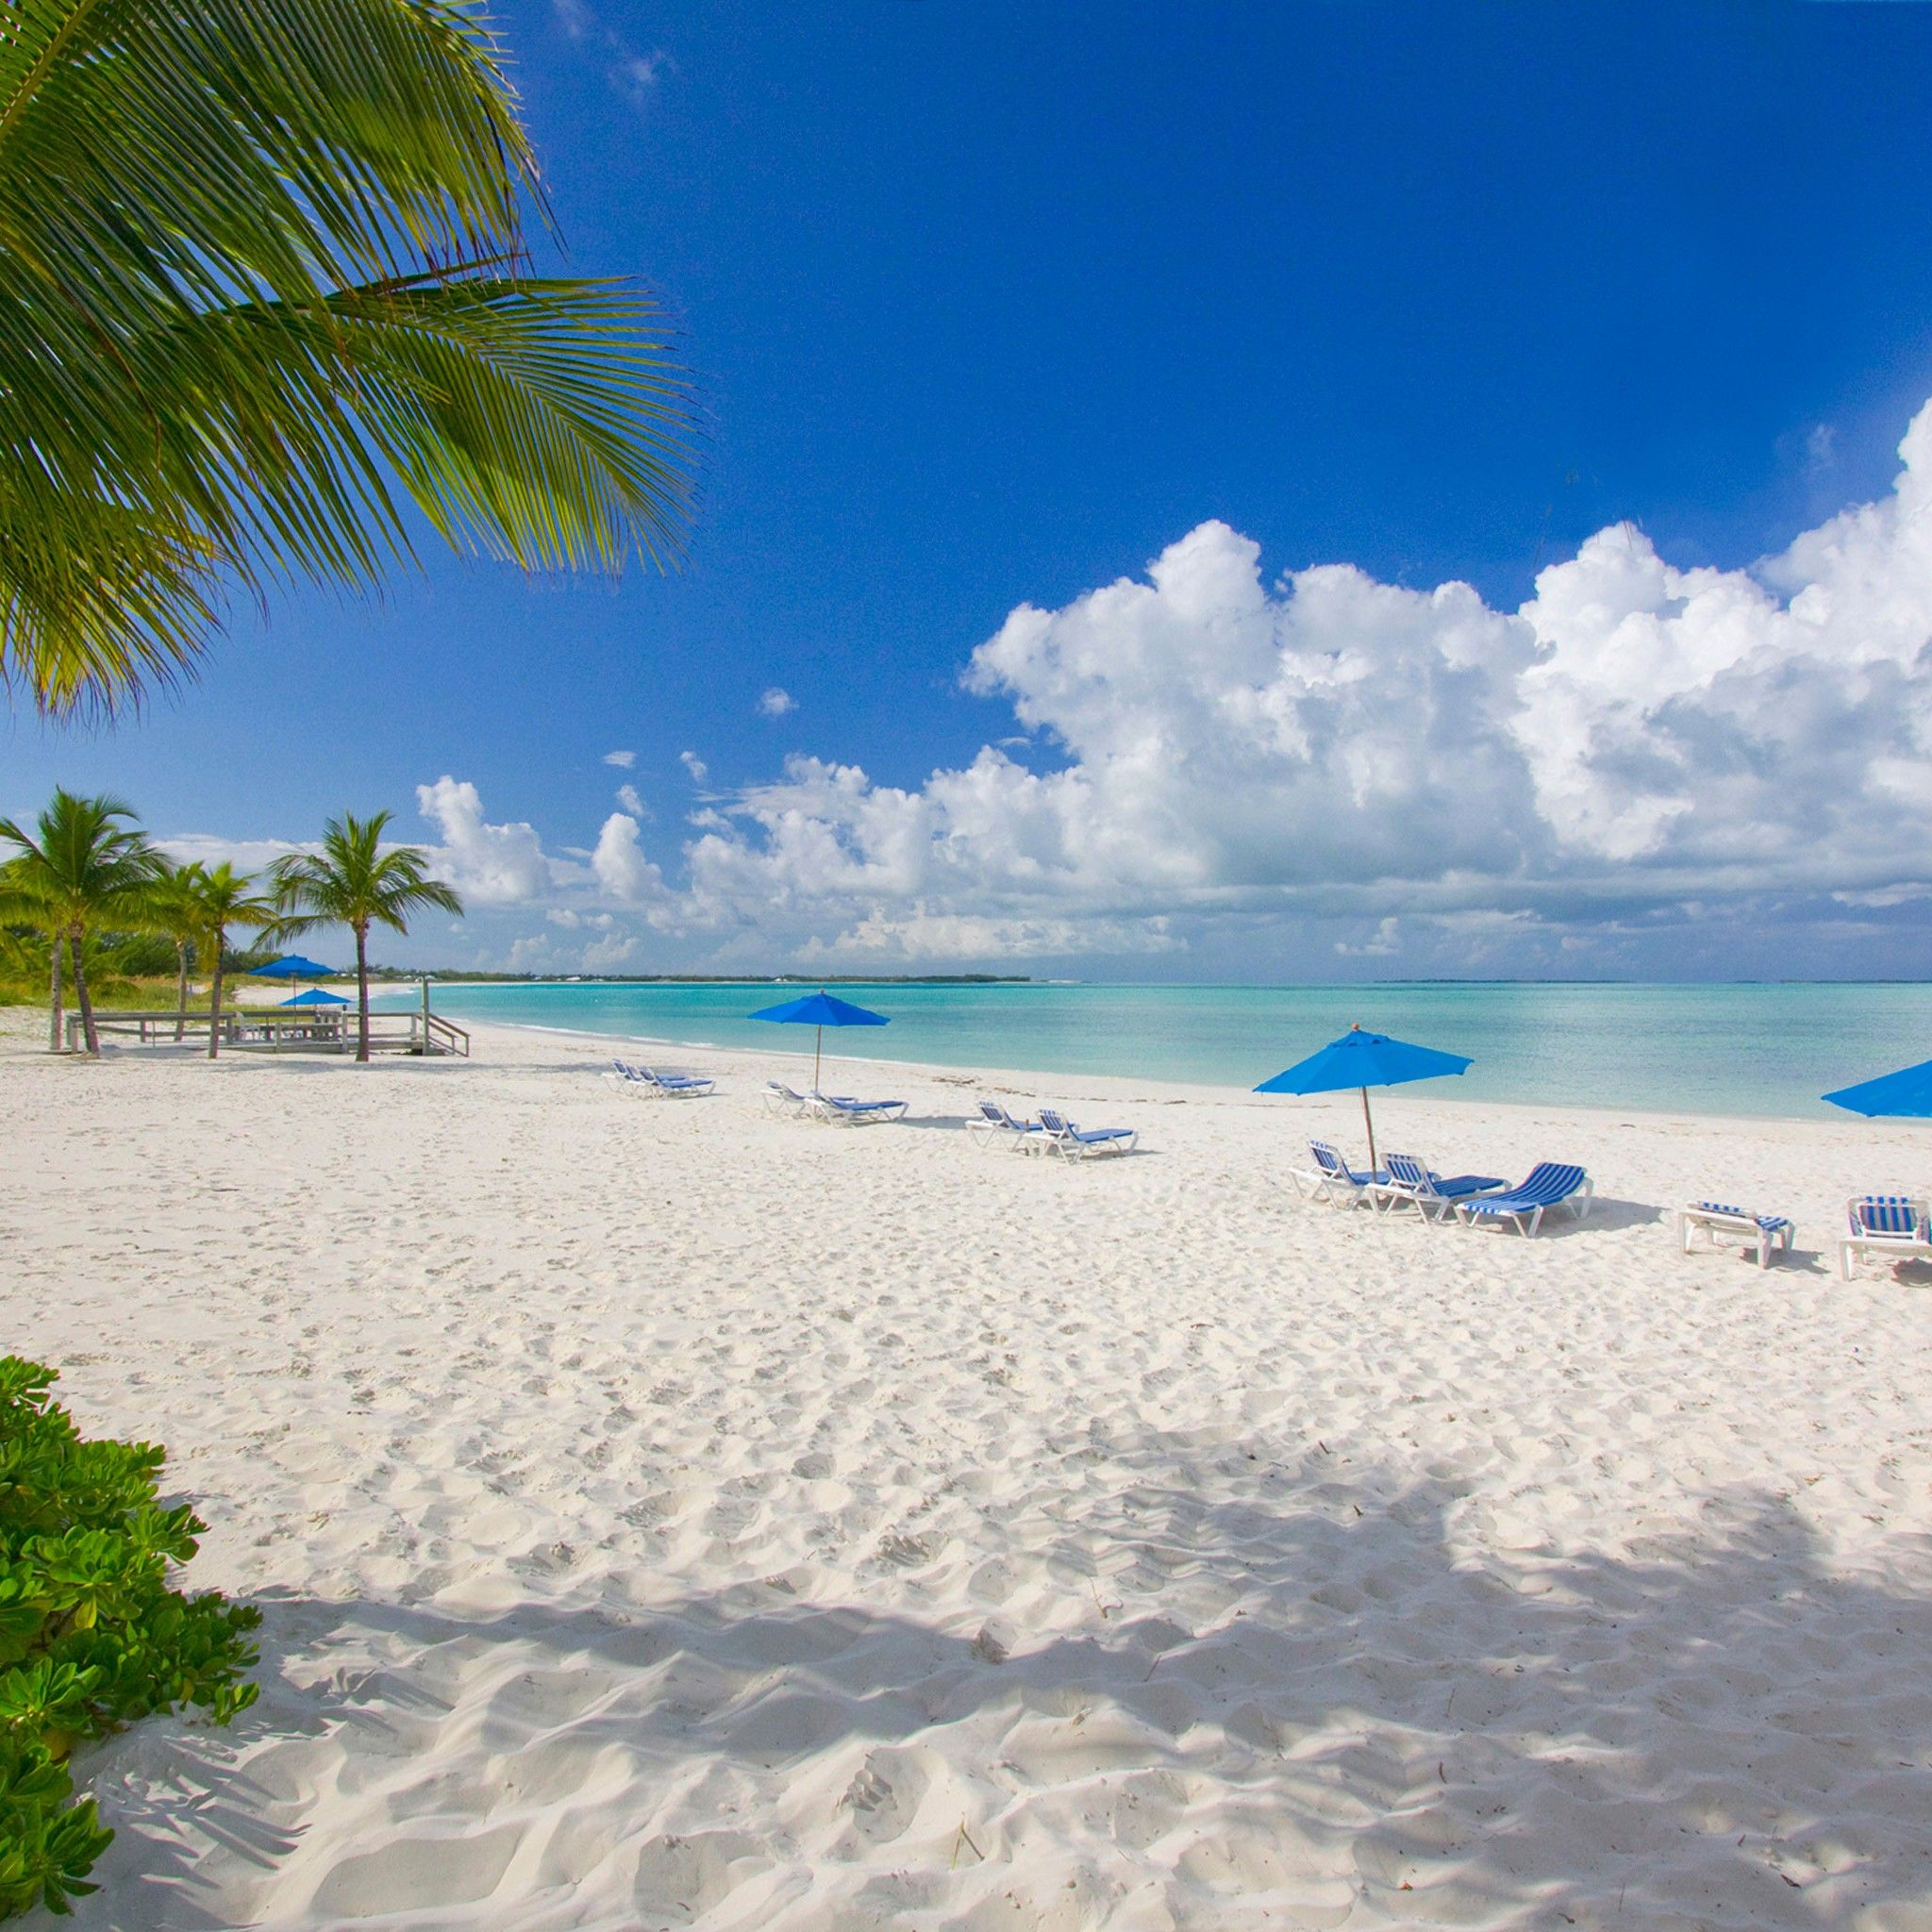 Beach Island: Bahama Beach Club Resort (Treasure Cay, Great Abaco Island